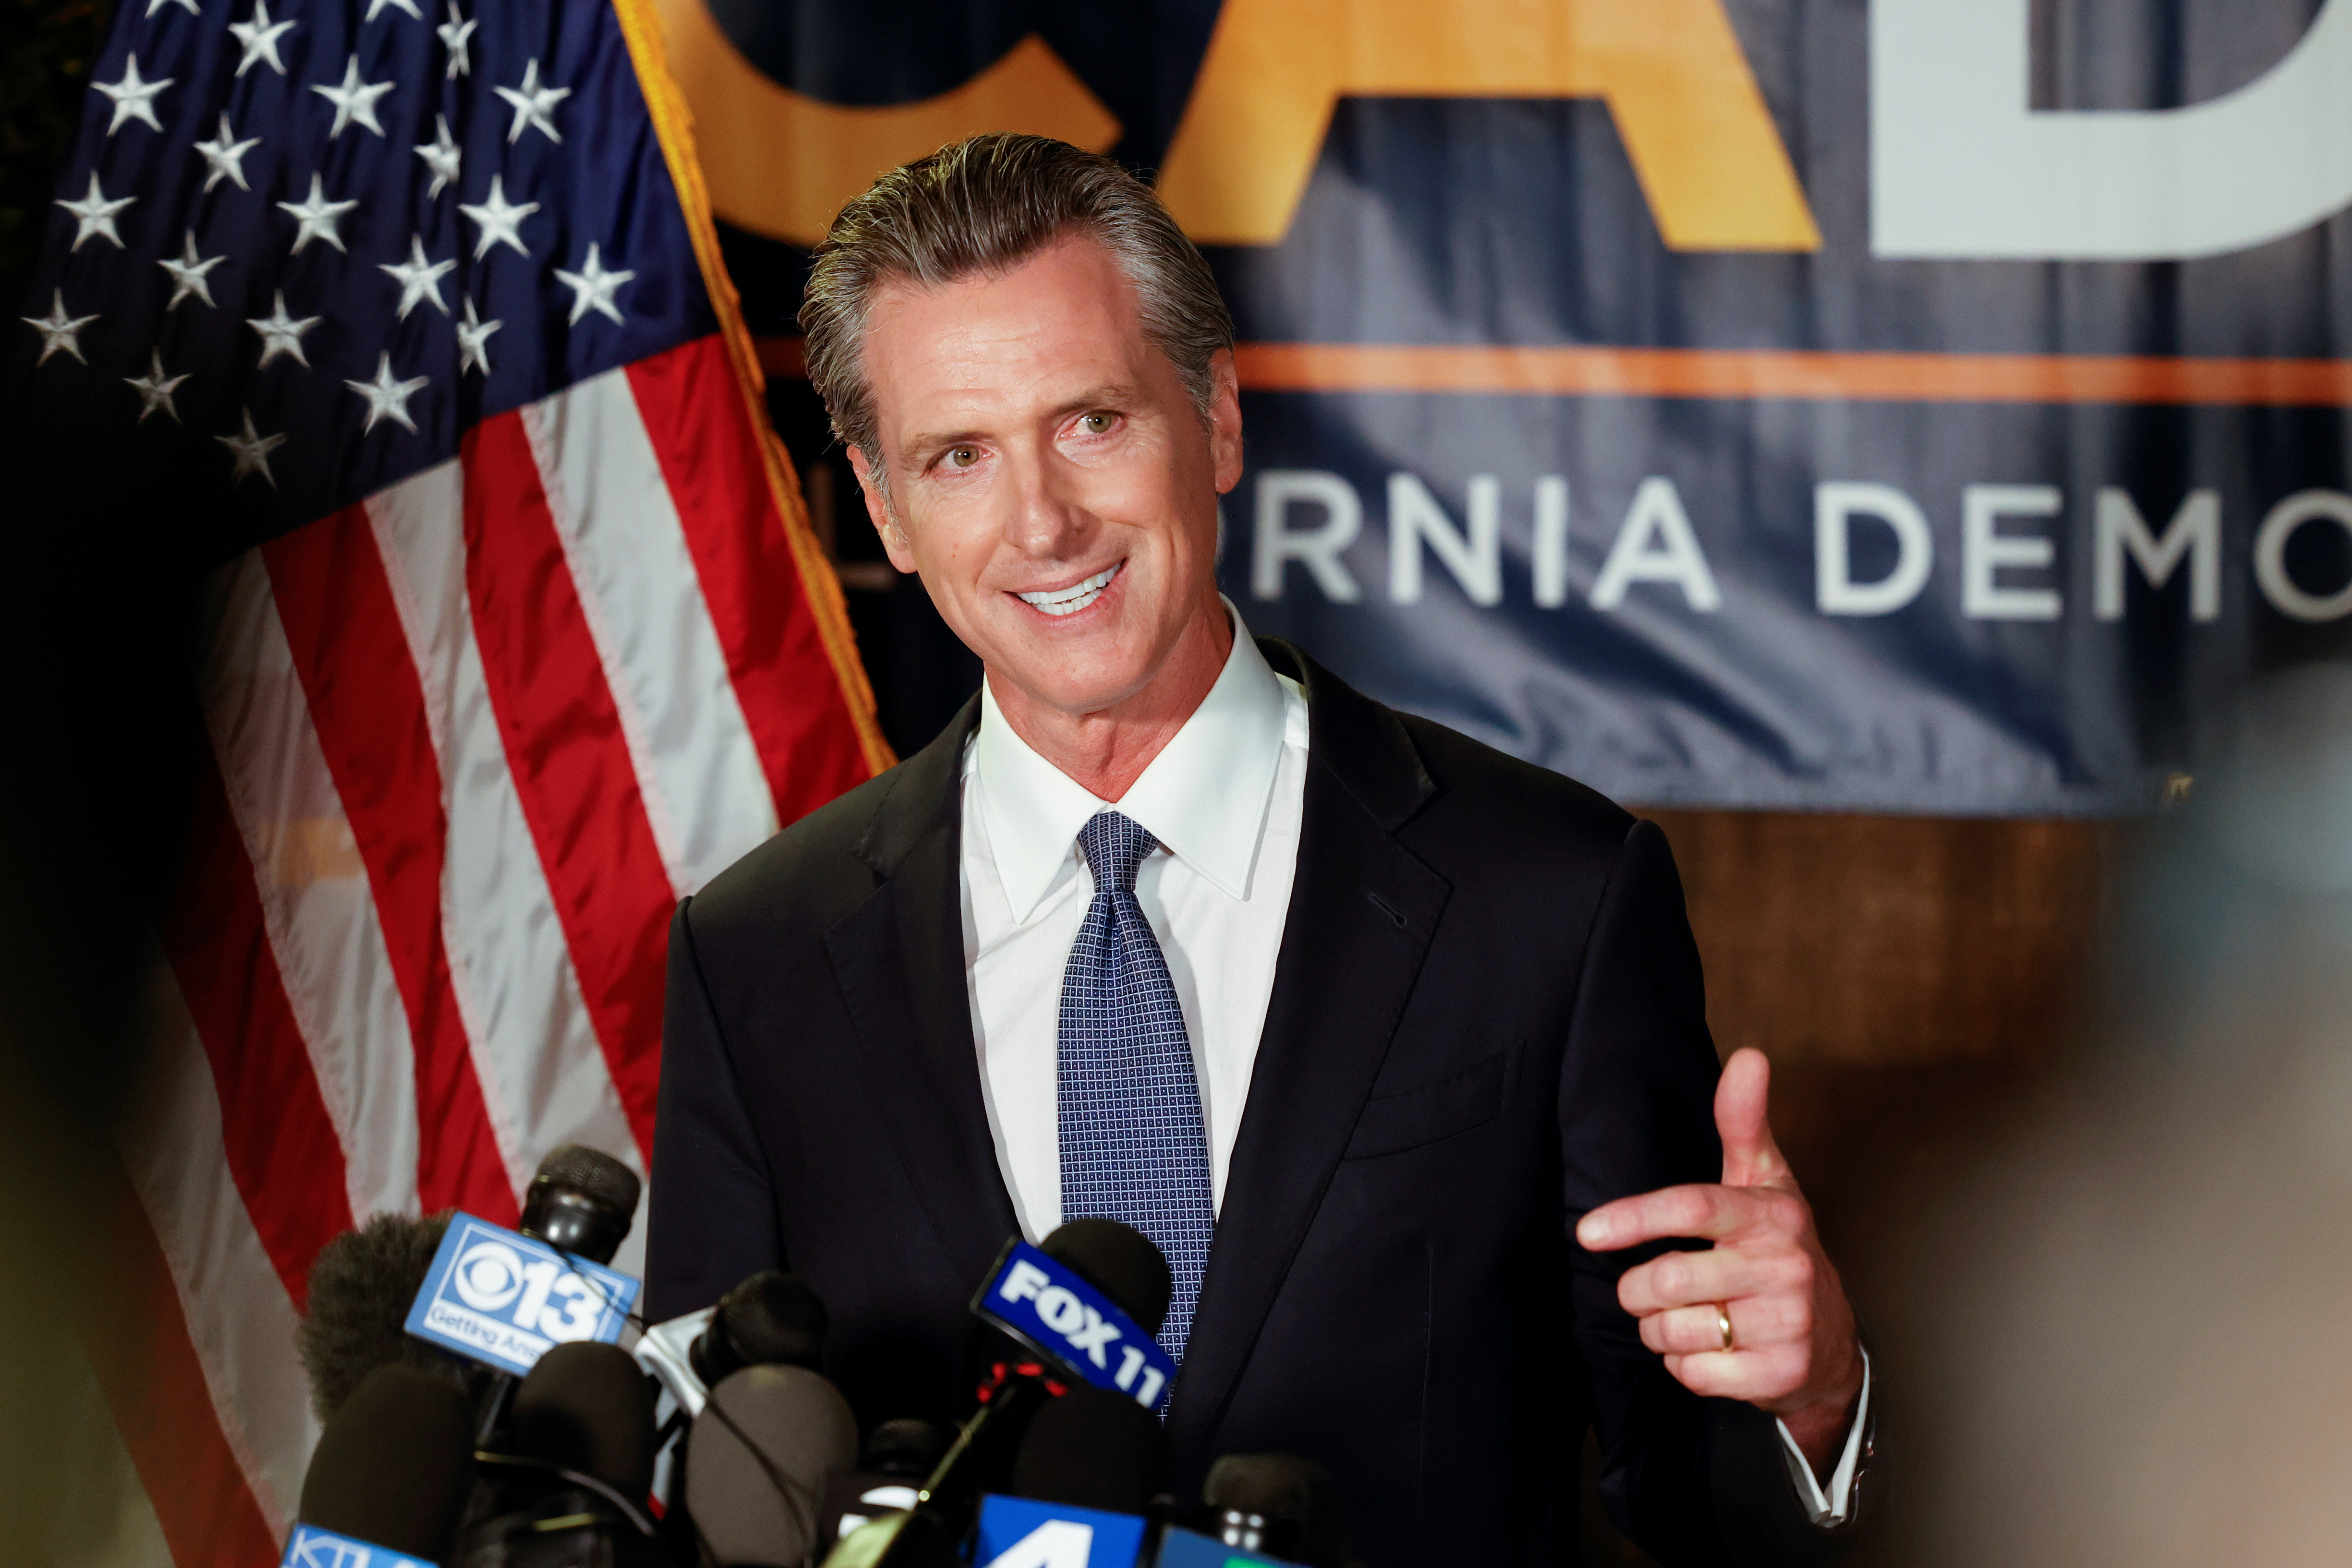 California Governor Gavin Newsom speaks after the polls close on the recall election, at the California Democratic Party headquarters in Sacramento, California, U.S., September 14, 2021.  REUTERS/Fred Greaves